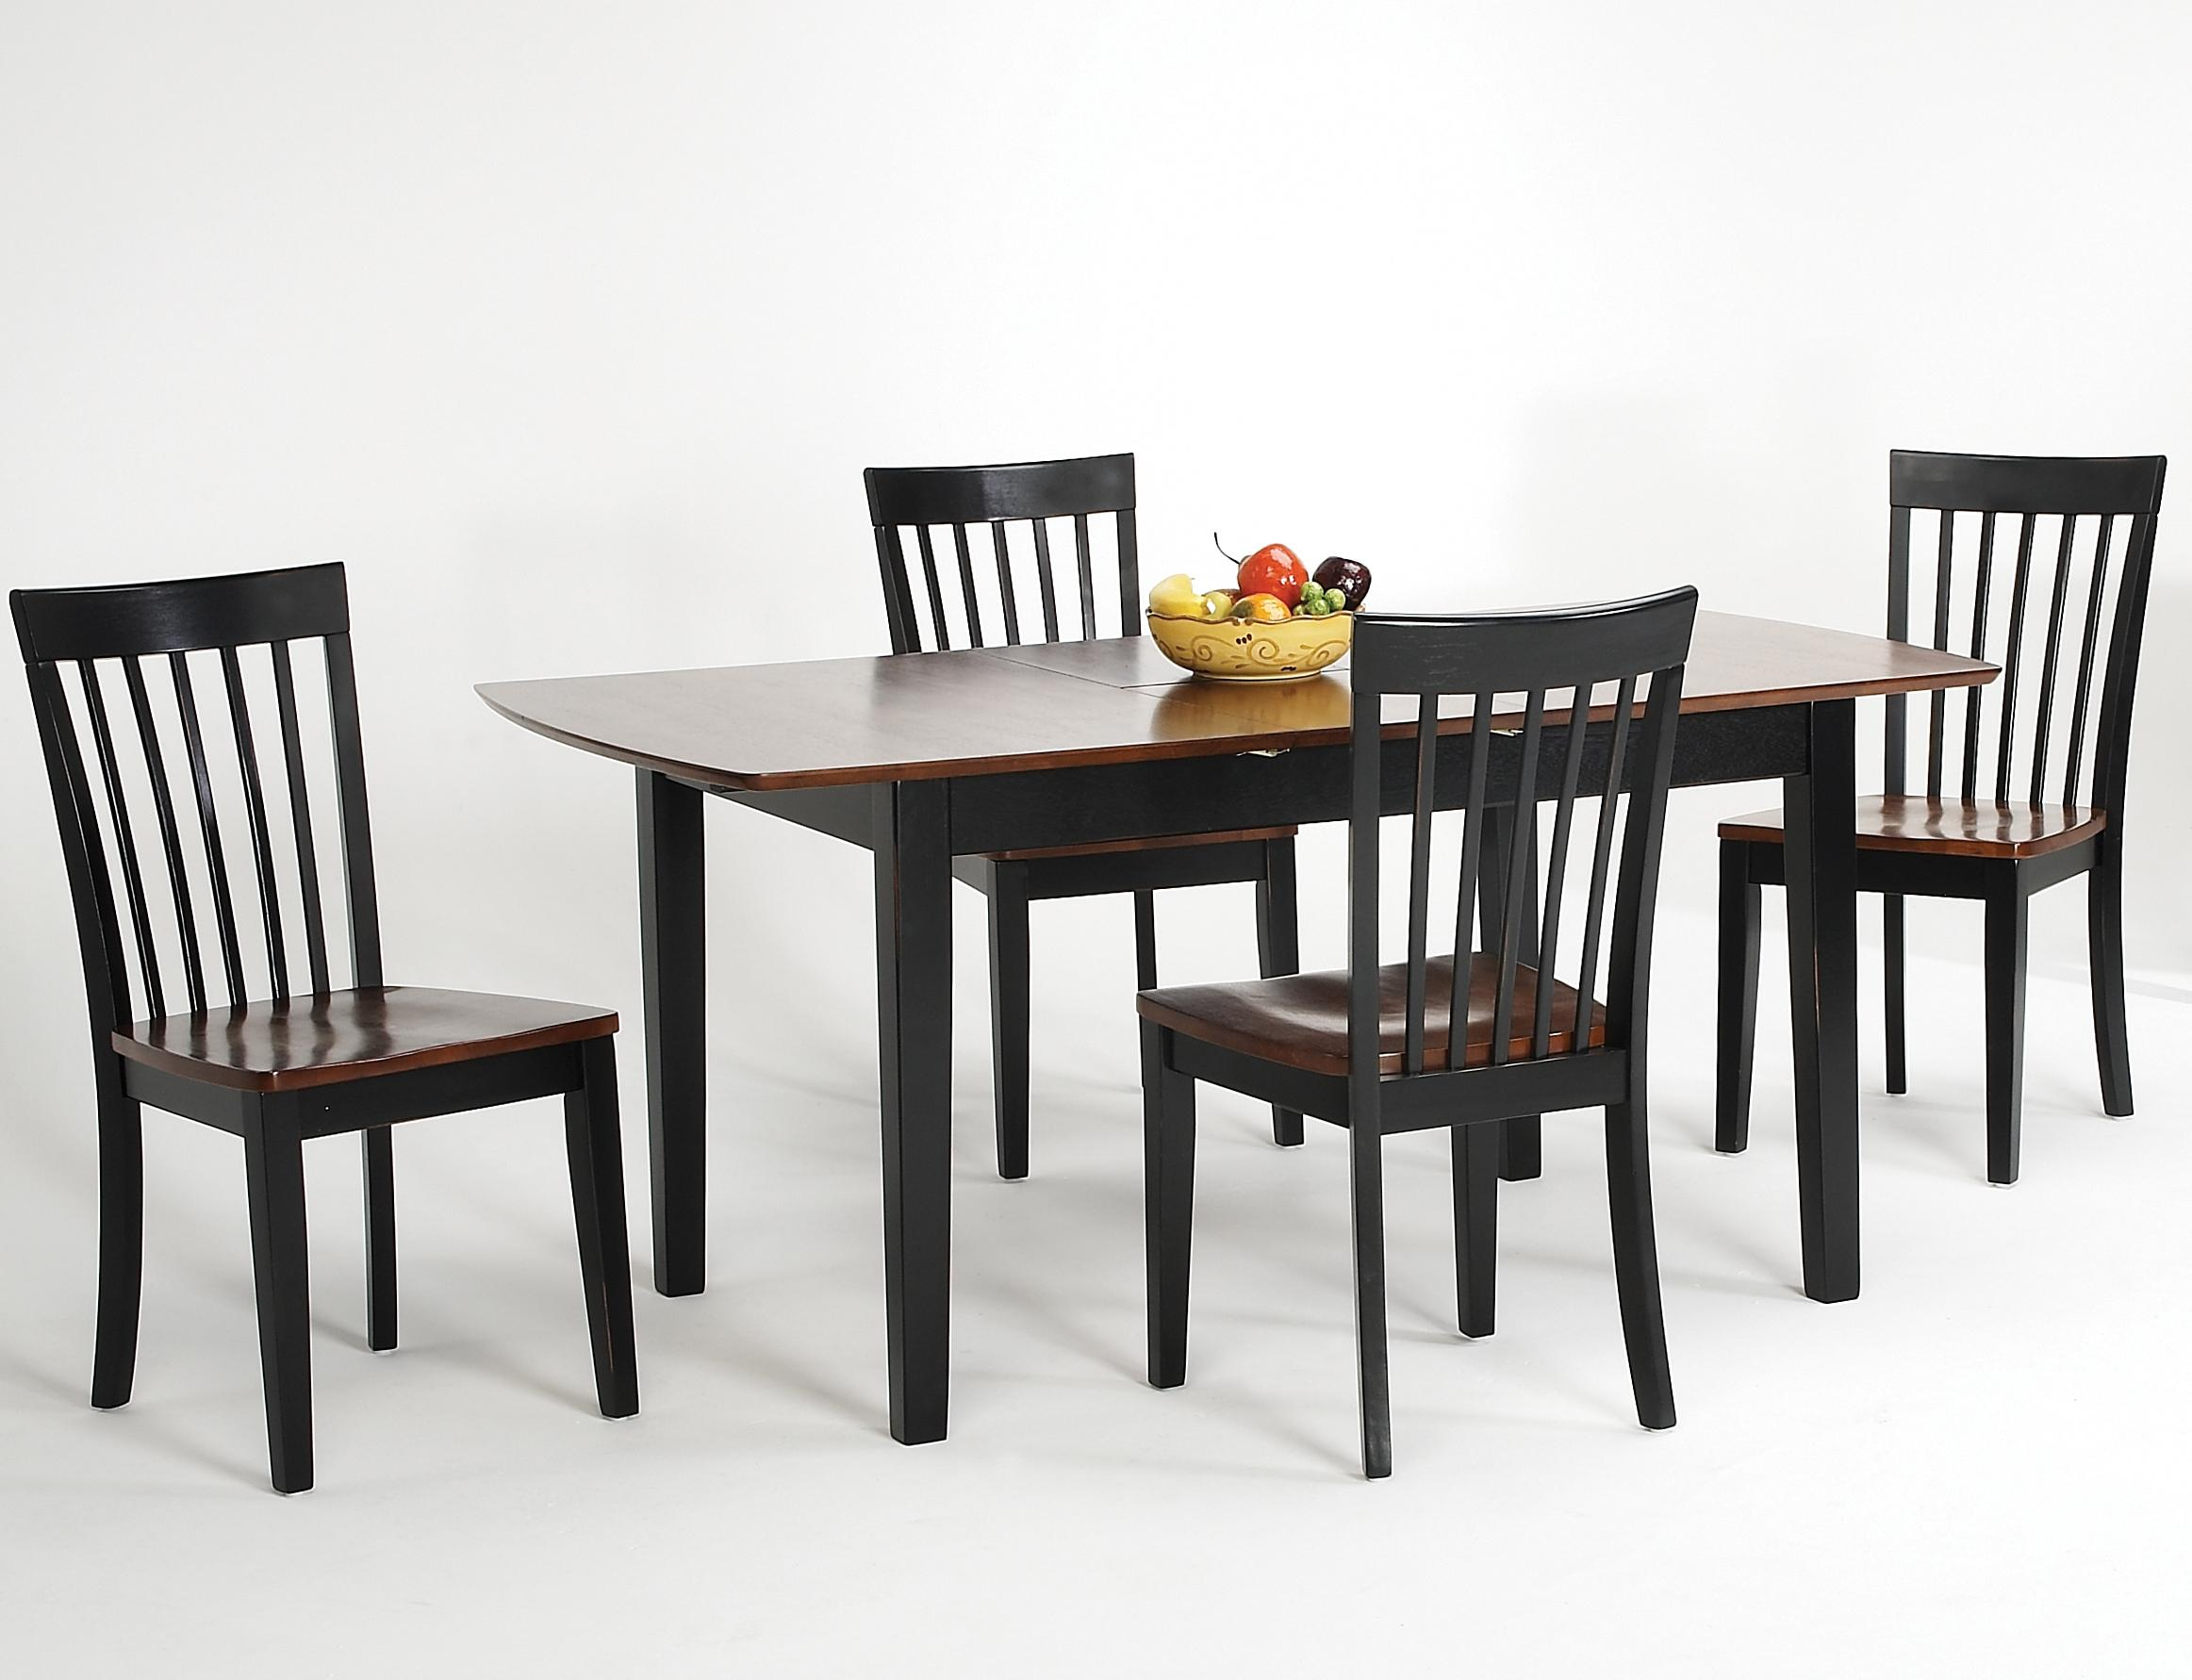 Newbury and Kensington Contemporary Dining Sets 5 Piece Table and Chair Set by Amesbury Chair at Dinette Depot